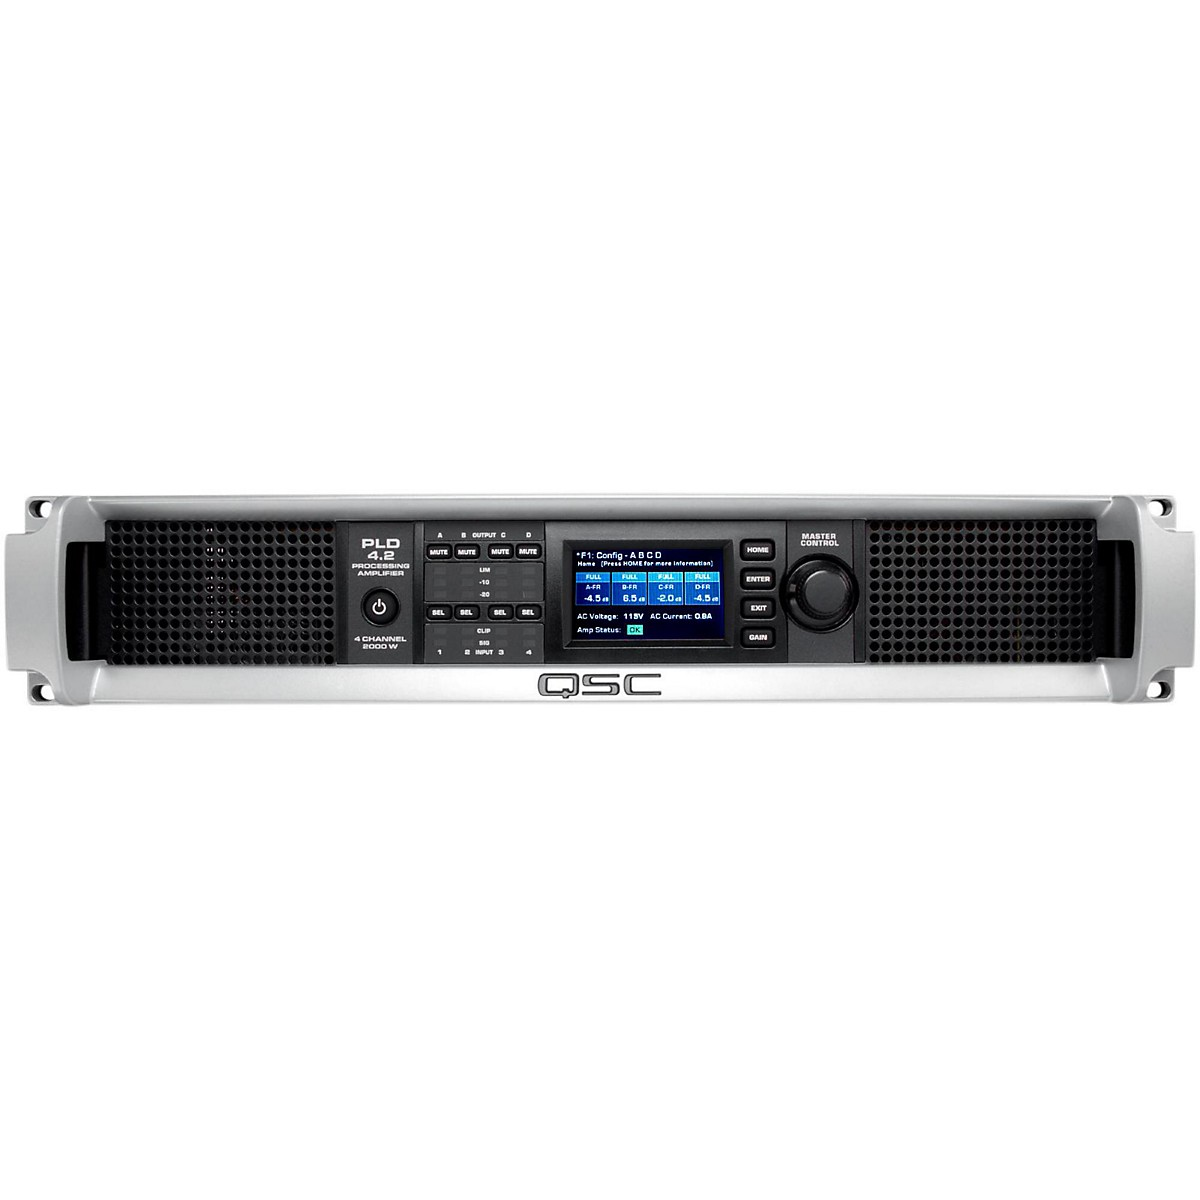 QSC PLD4.2 Multi-Channel System Processing Amplifier